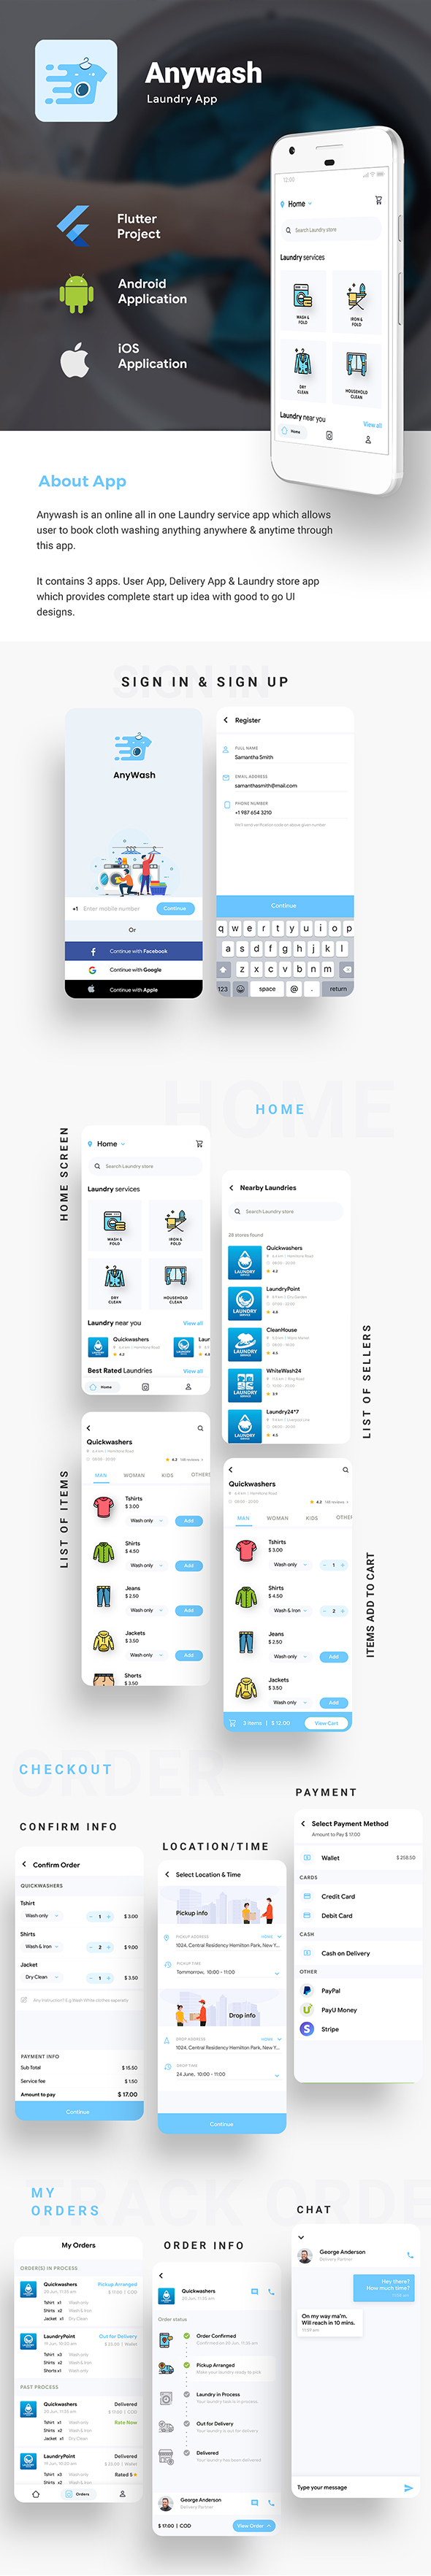 Multi Vendor Laundry Booking & Delivery App| Android + iOS App Template | 3 Apps | FLUTTER | Anywash - 3